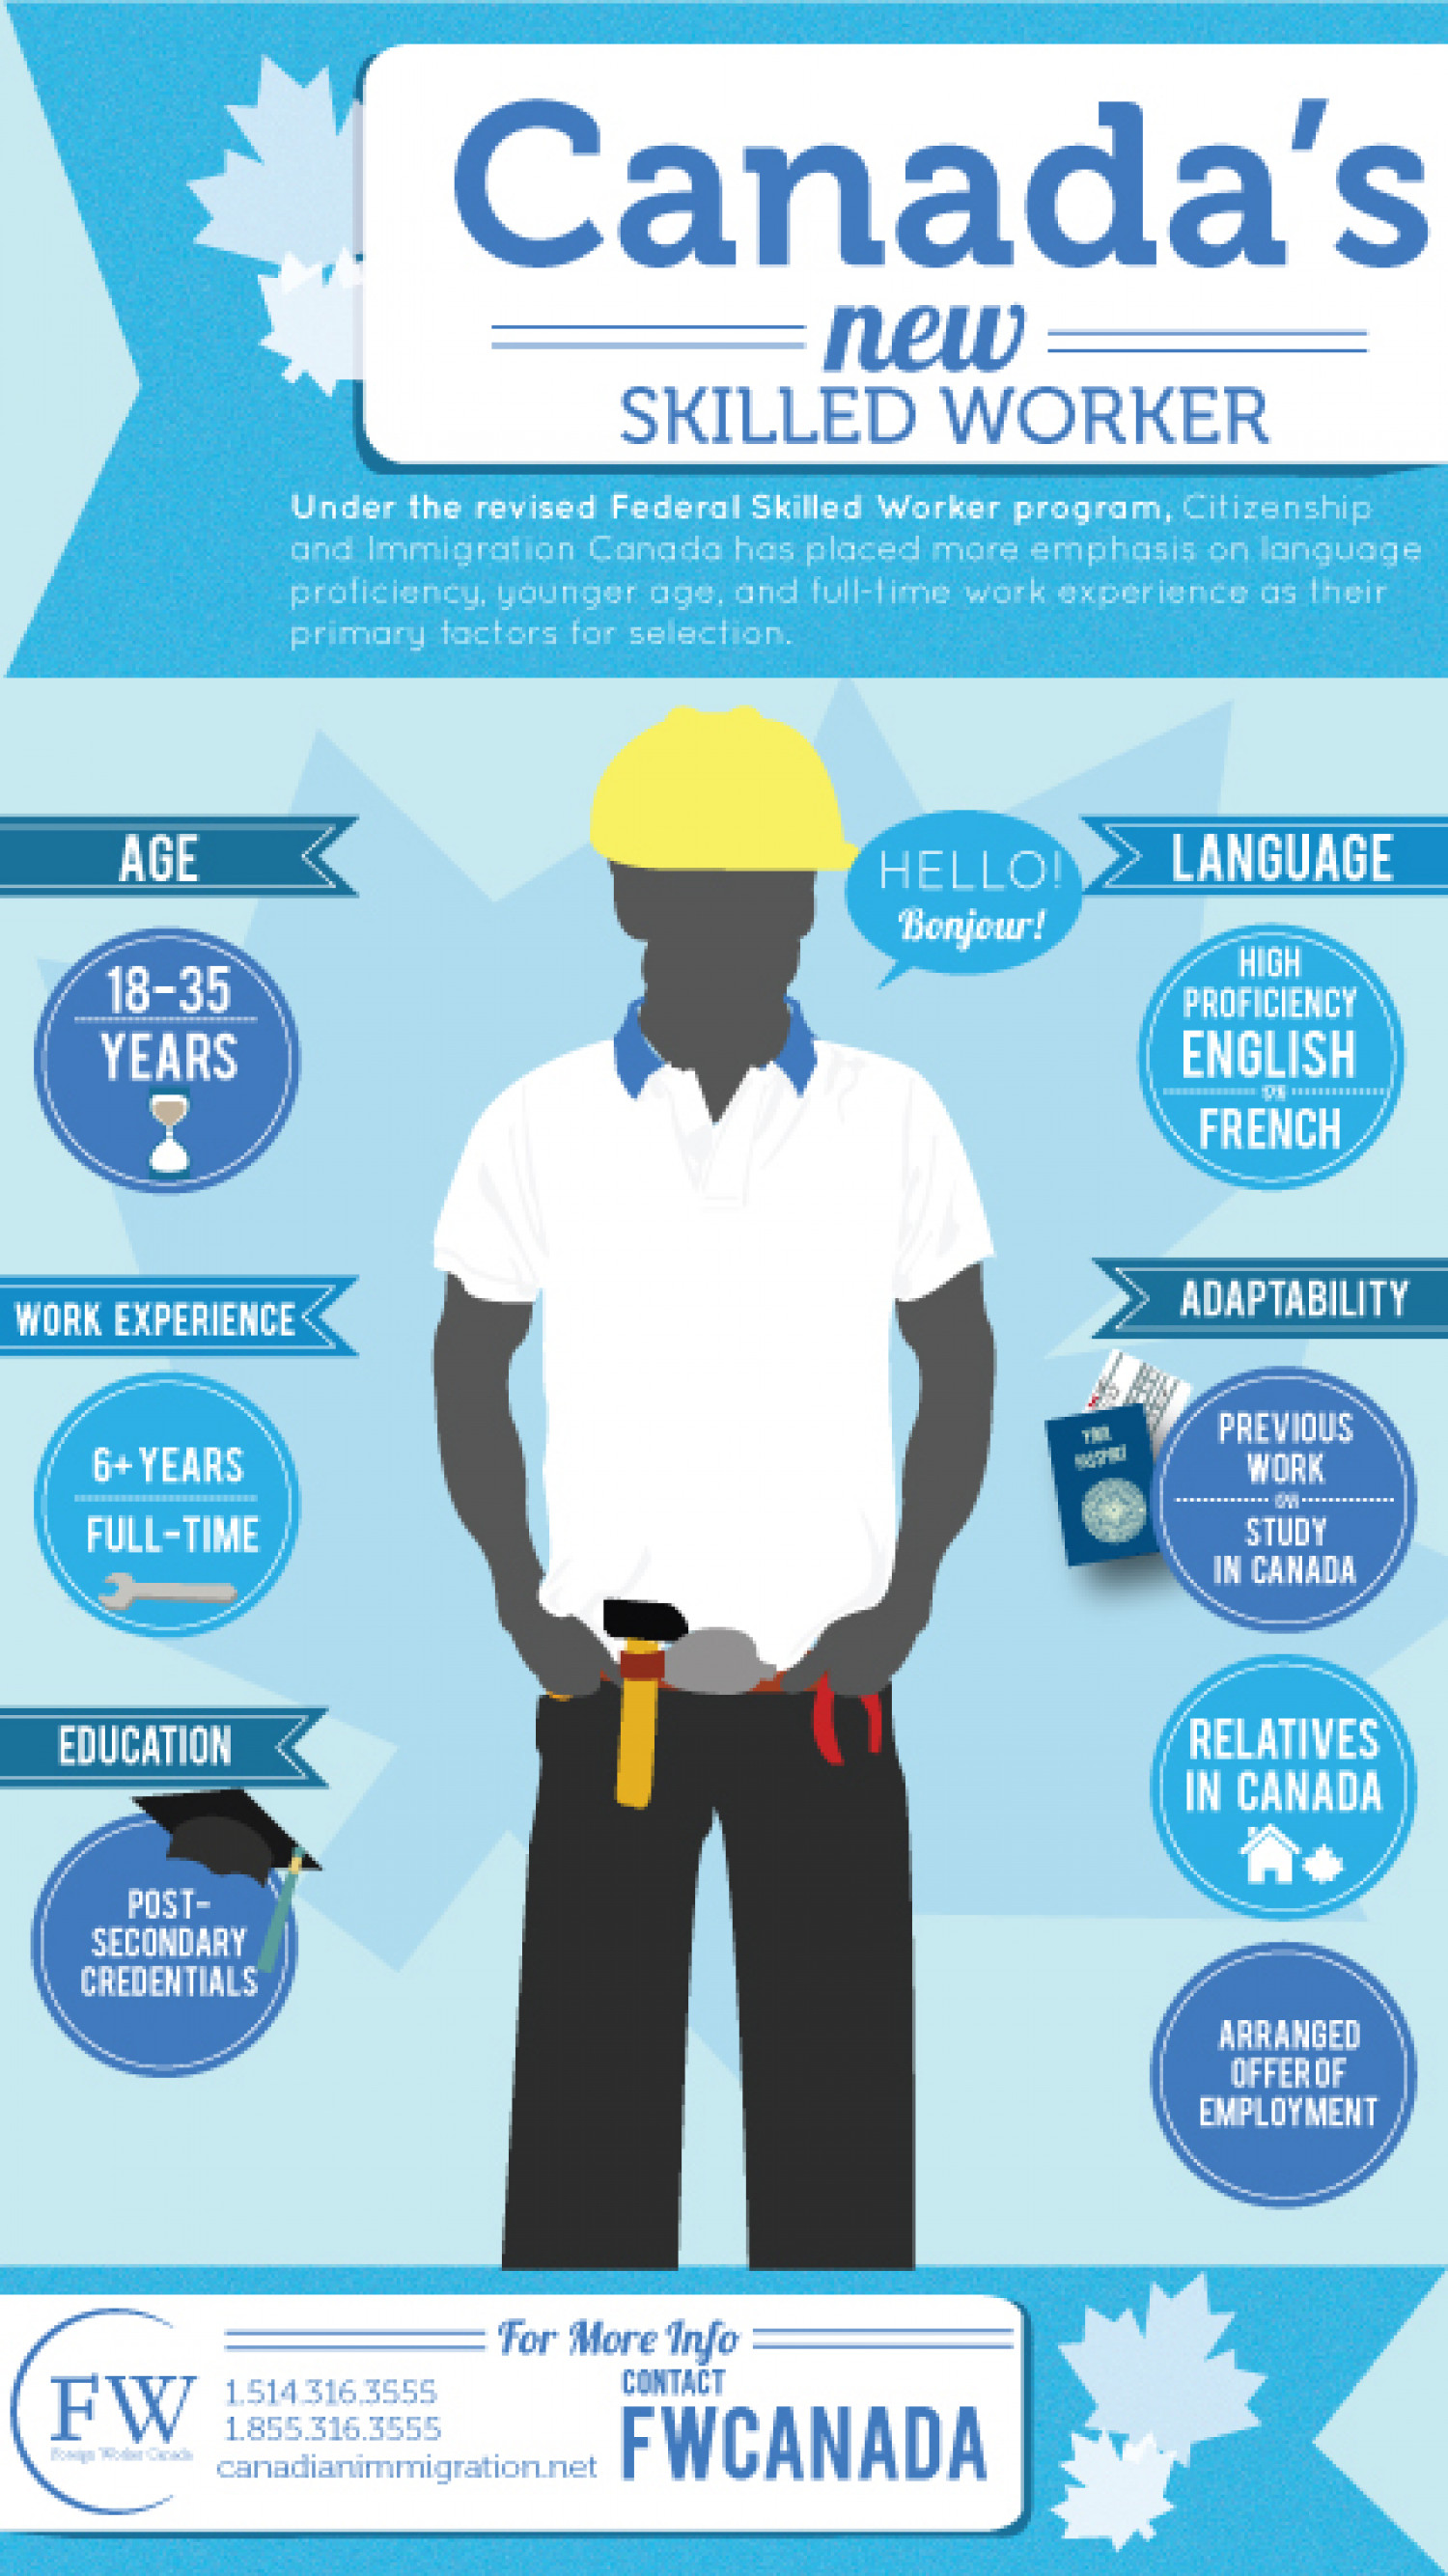 Canada's New Skilled Worker Infographic